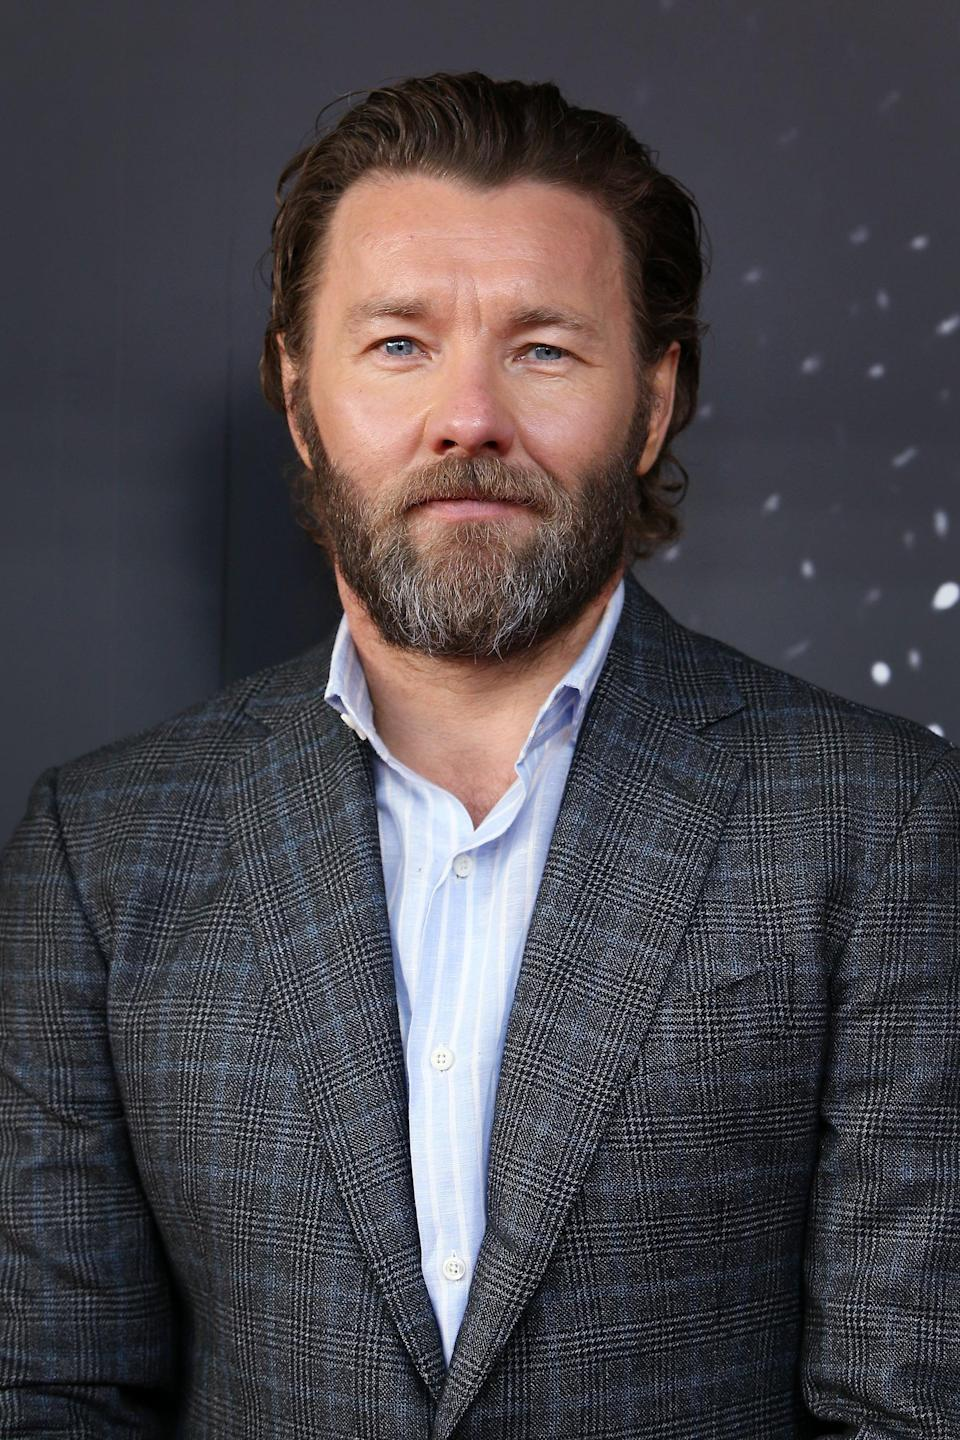 <p>One of the big pieces of news out of this cast announcement: Uncle Owen and Aunt Beru are back! Edgerton briefly portrayed Luke's uncle (and Anakin's stepbrother) in <strong>Attack of the Clones</strong> and <strong>Revenge of the Sith</strong>, and he's back in some capacity for the new miniseries. Since then, Edgerton has become a fairly prolific actor, with projects ranging from dramas like <strong>Loving</strong> to <strong>The Great Gatsby</strong> to action epics like <strong>Exodus: Gods and Kings</strong>.</p>